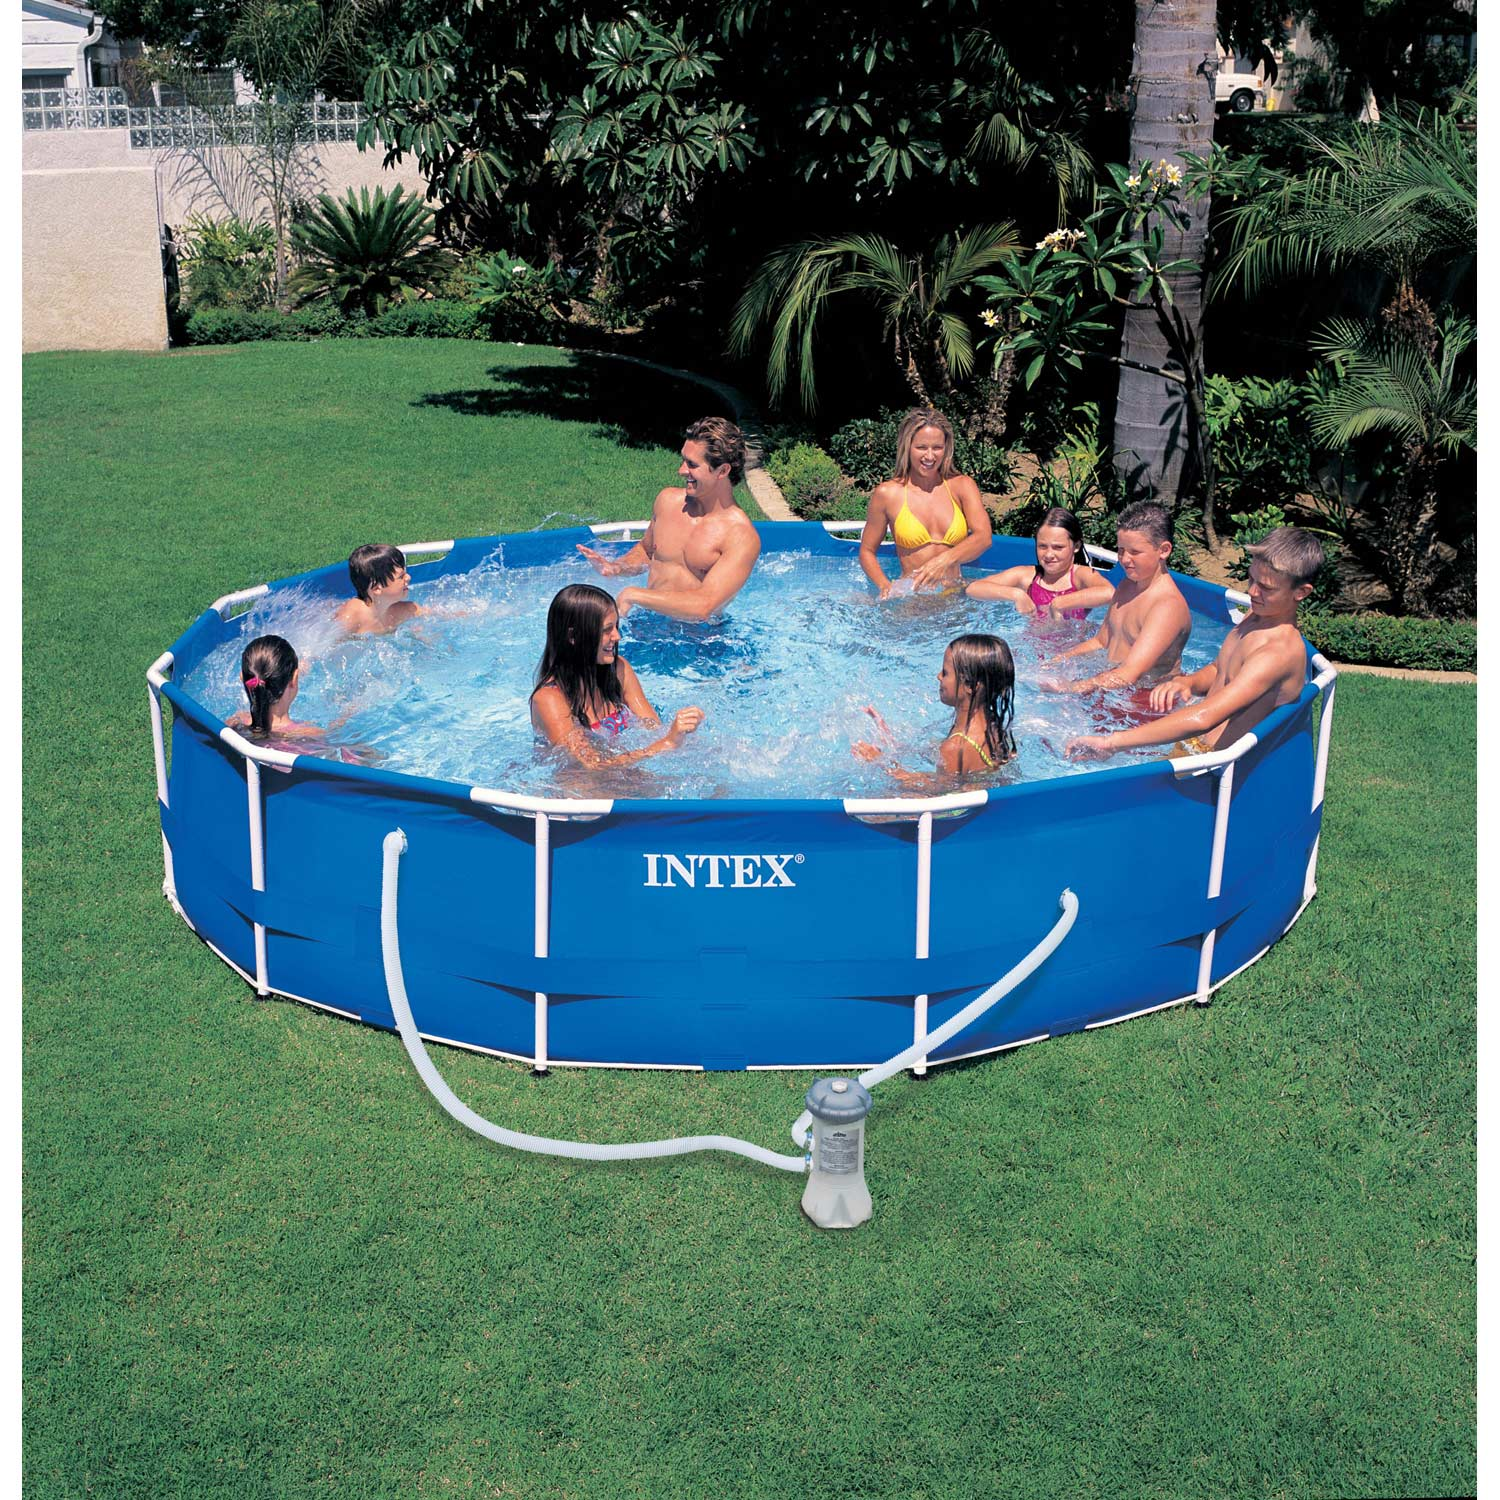 Piscine hors sol autoportante tubulaire metal frame intex for Piscine dure hors sol